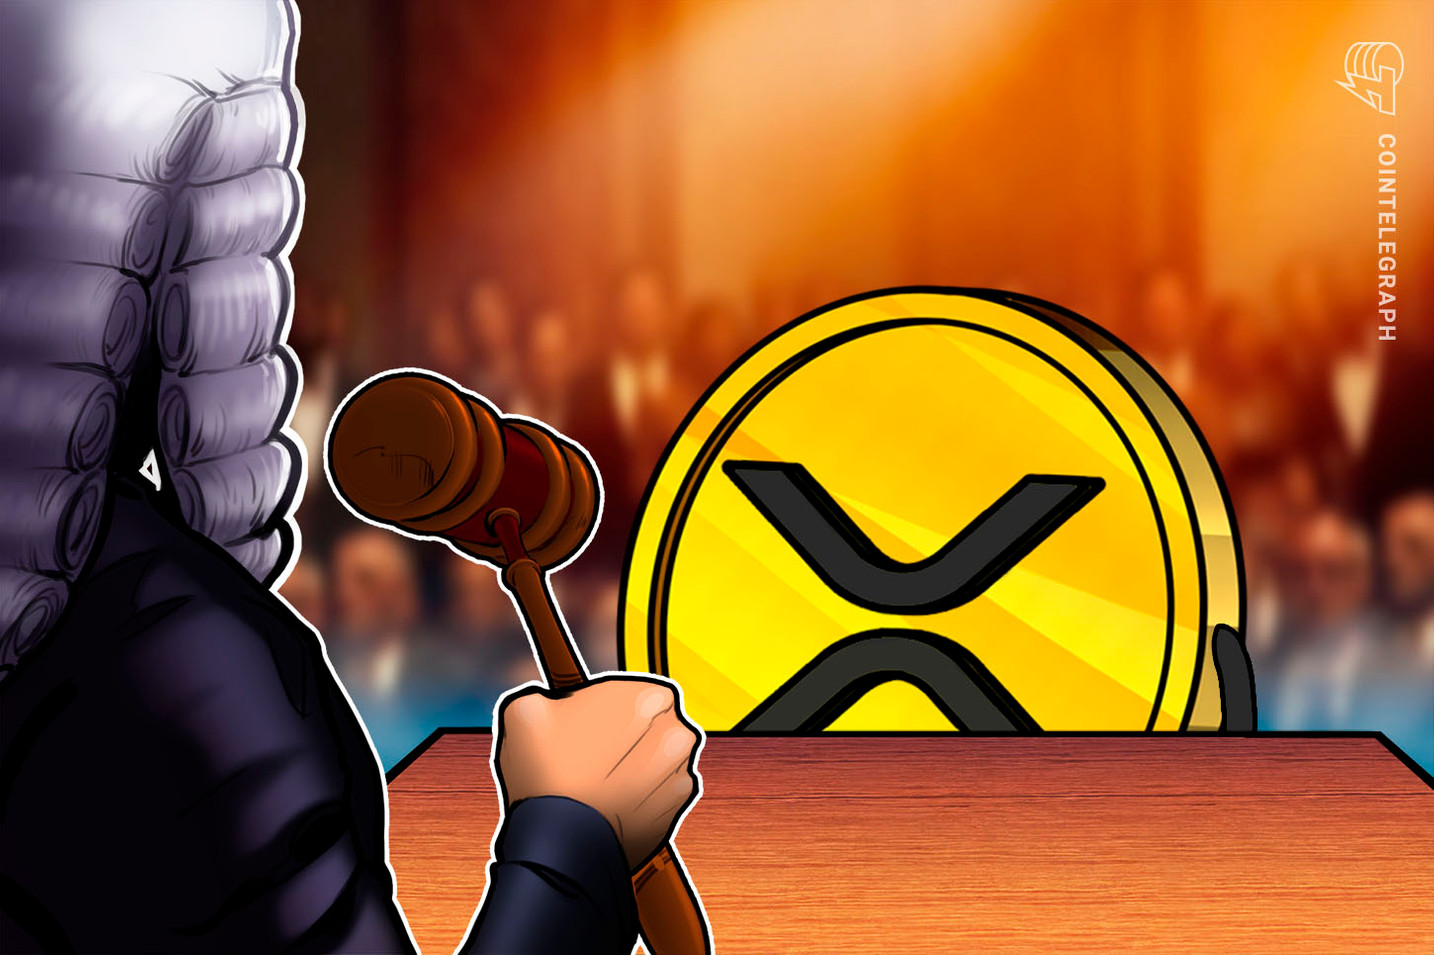 Lawsuit Alleging Ripple's XRP Is Unregistered Security Moves Forward